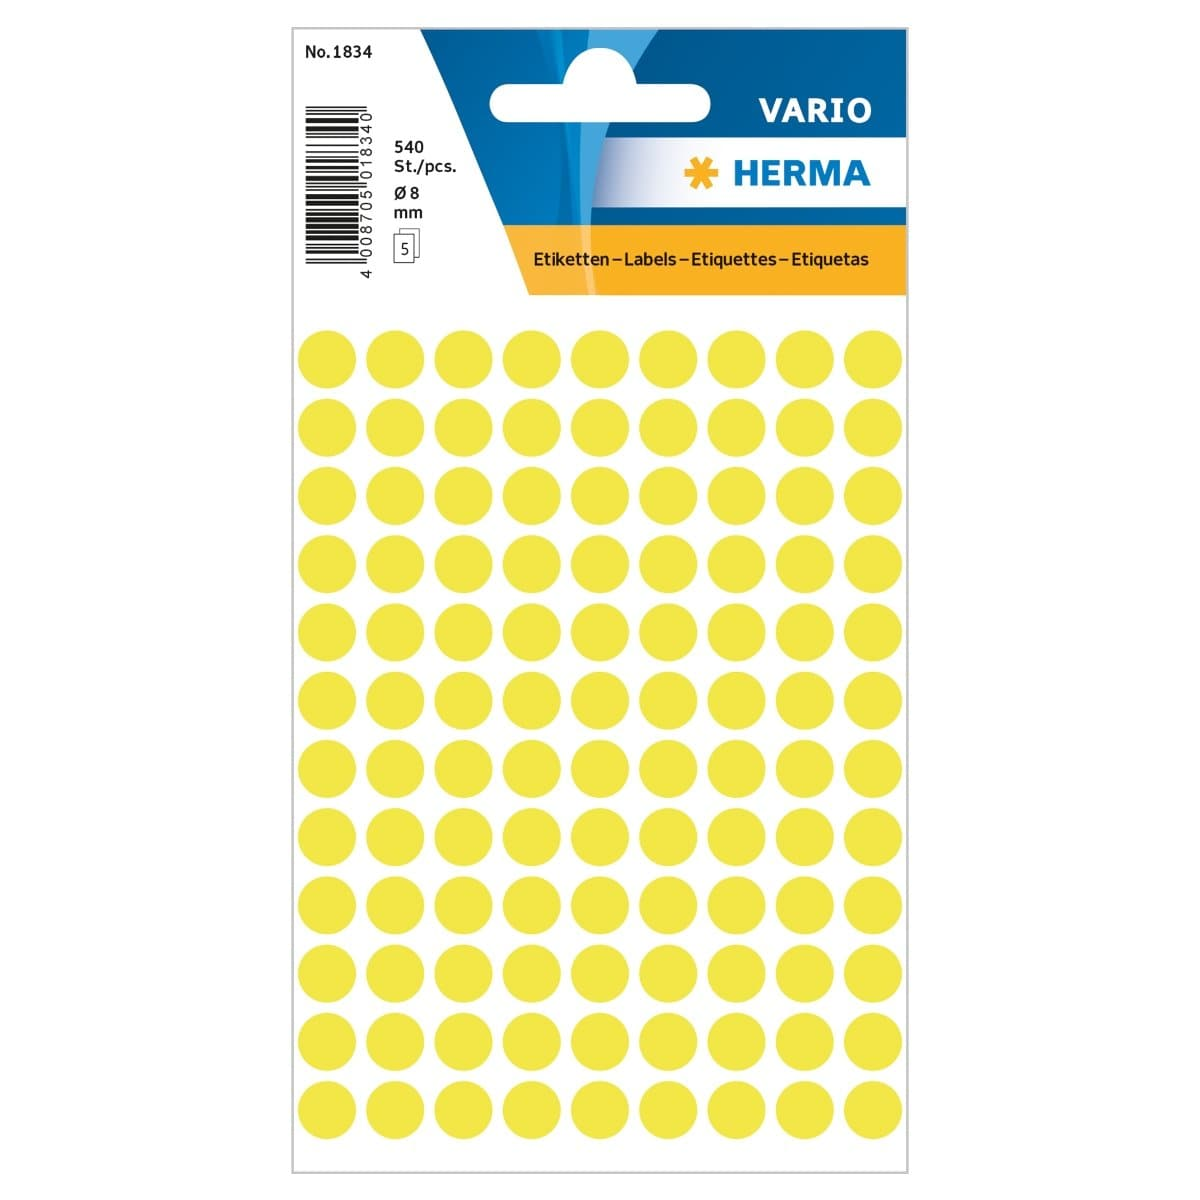 Herma Vario Sticker Color Dots, 8 mm, 540/pack, Fluo Yellow